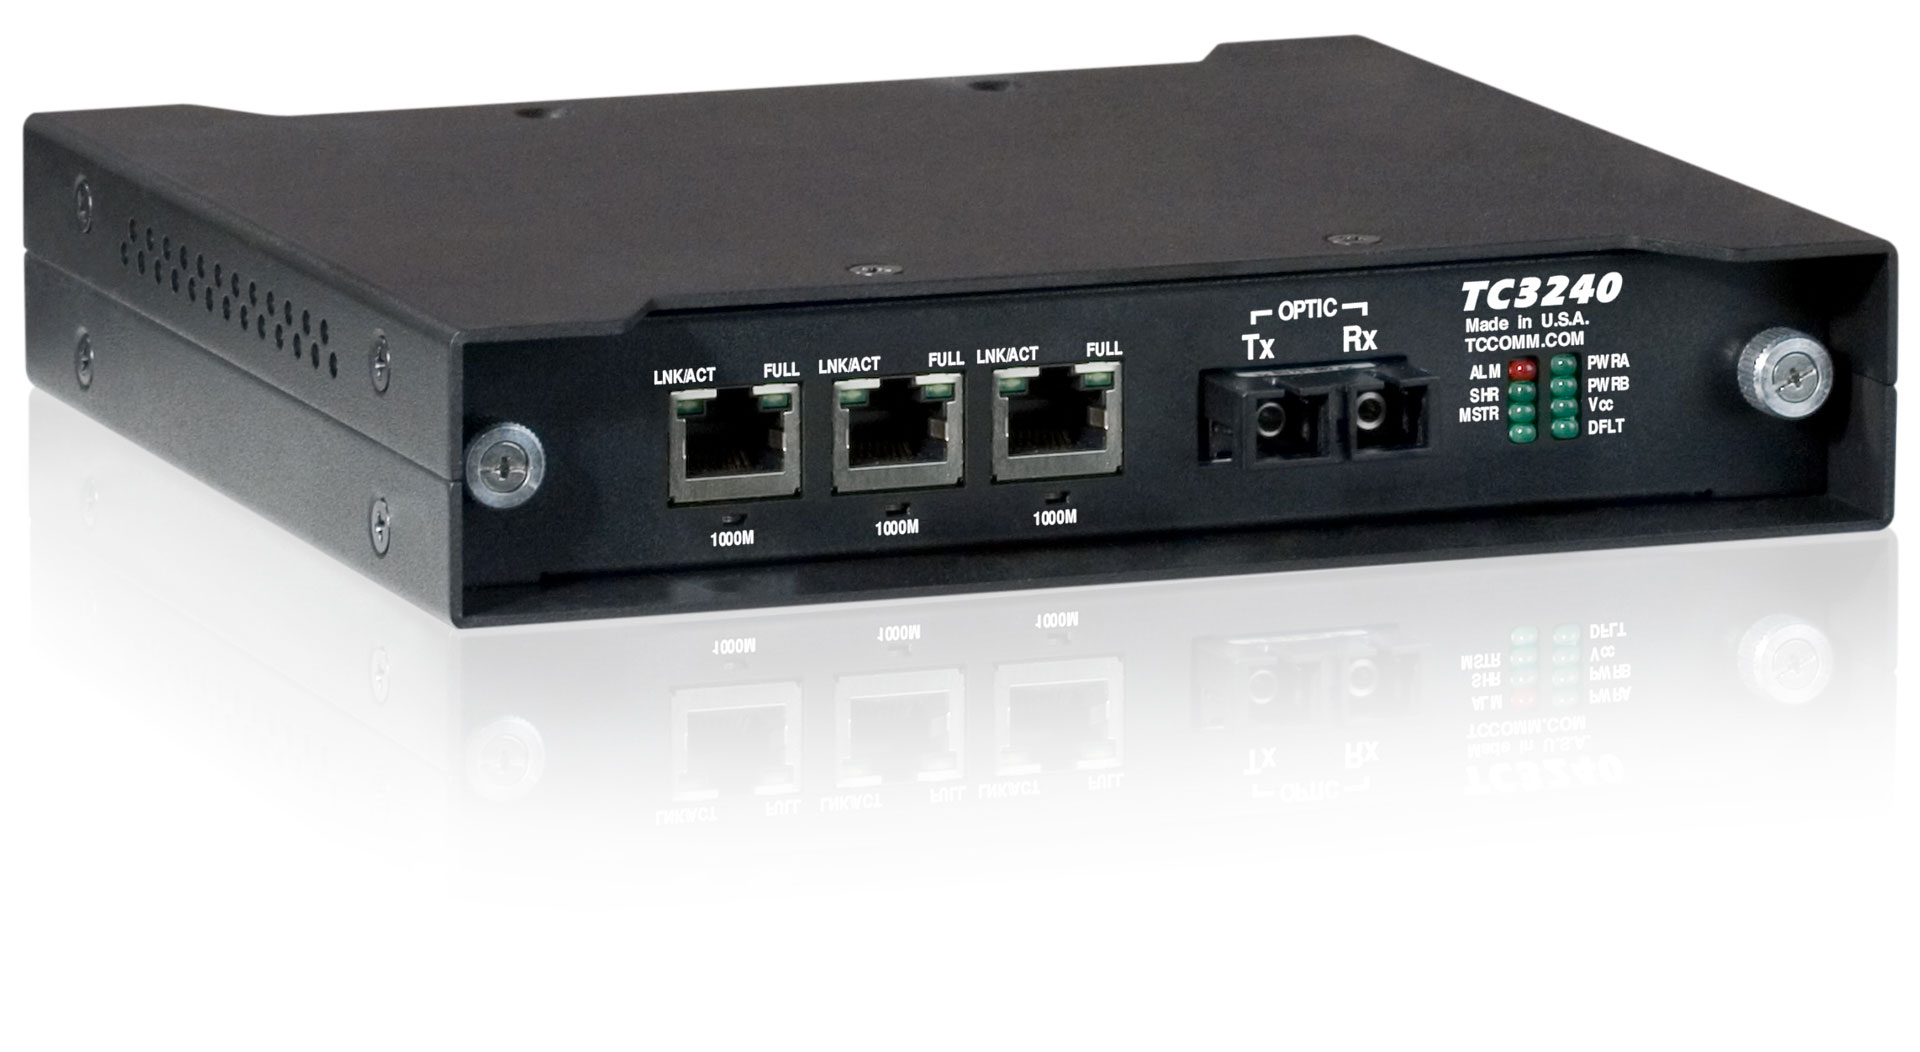 3-Port Fiber Optic Ethernet Media Converter Switch